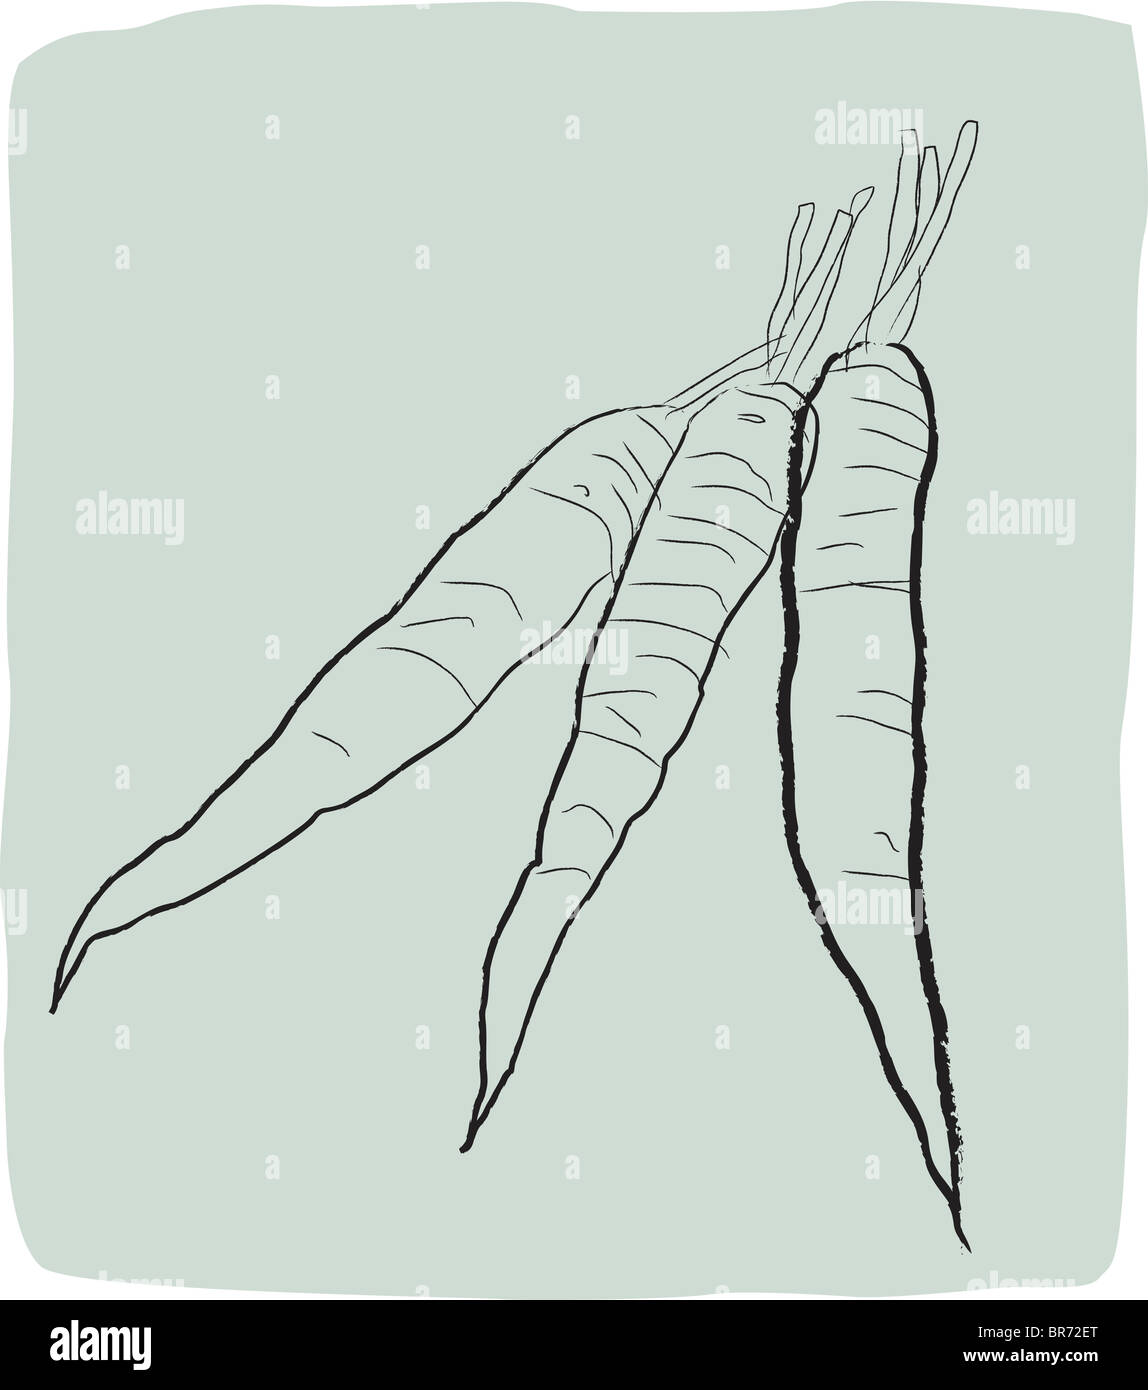 A textured line drawing of carrots - Stock Image